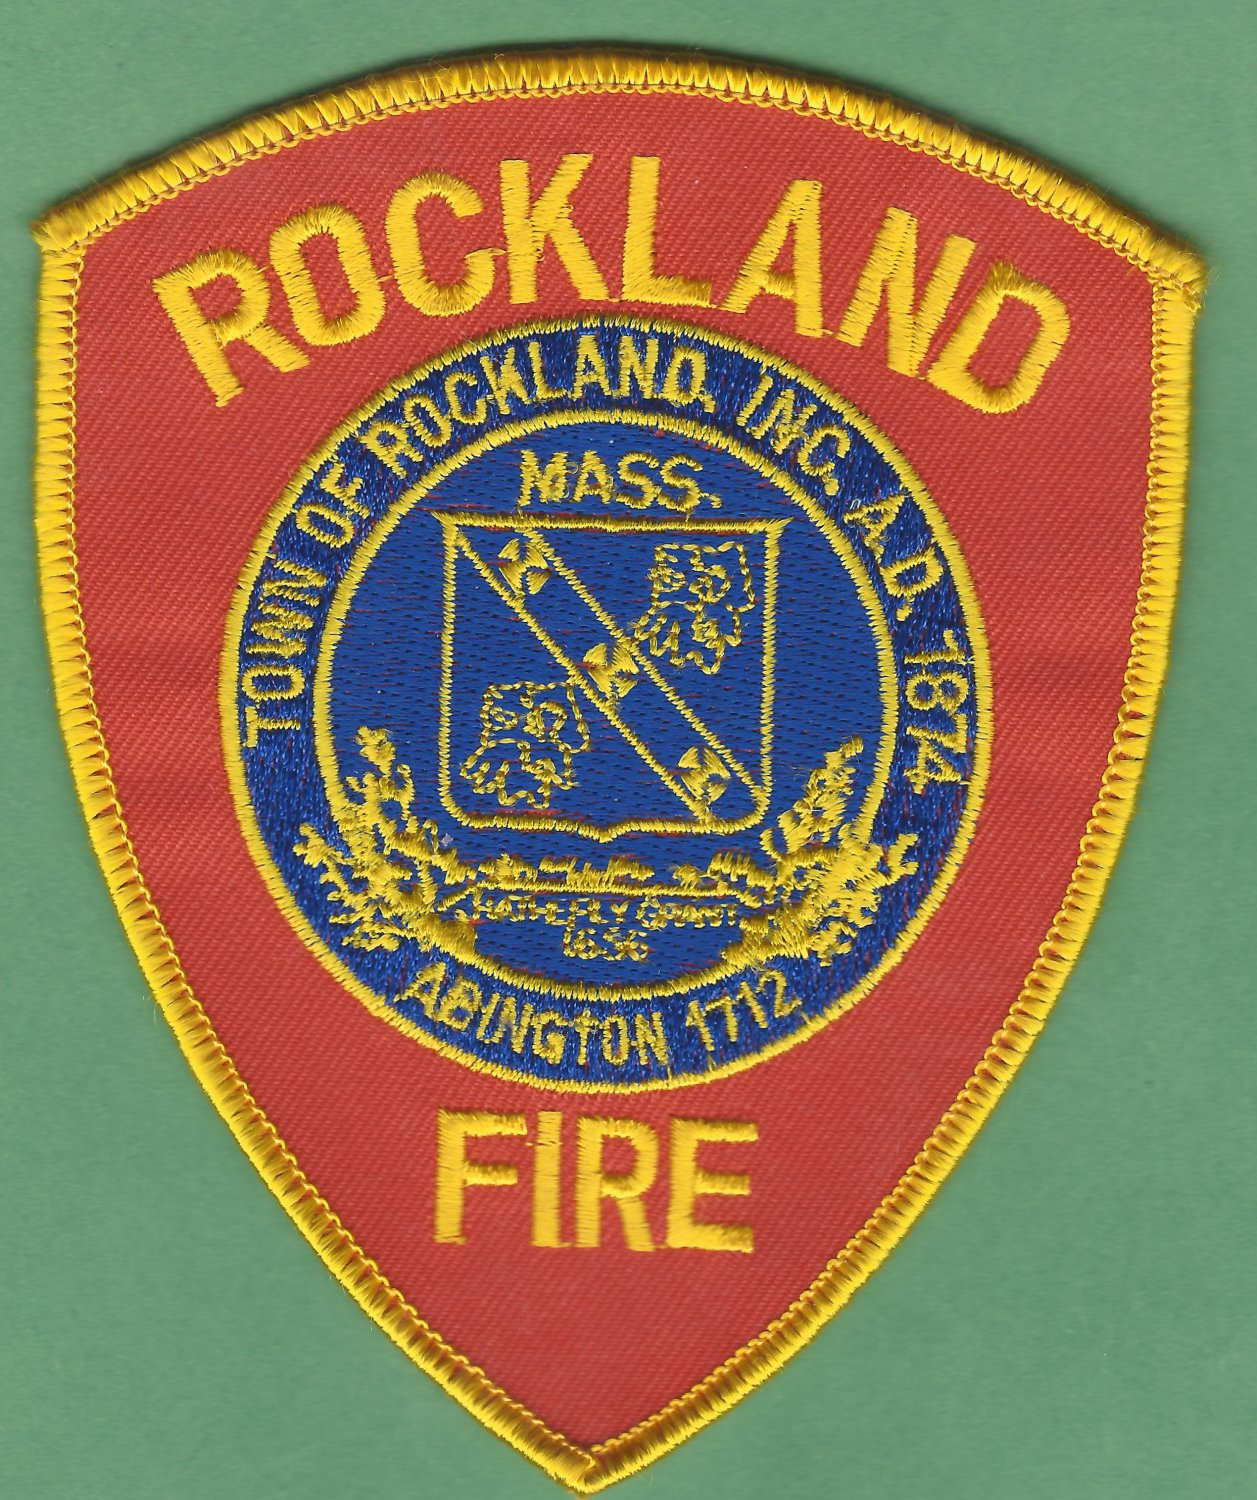 ROCKLAND MASSACHUSETTS FIRE RESCUE PATCH